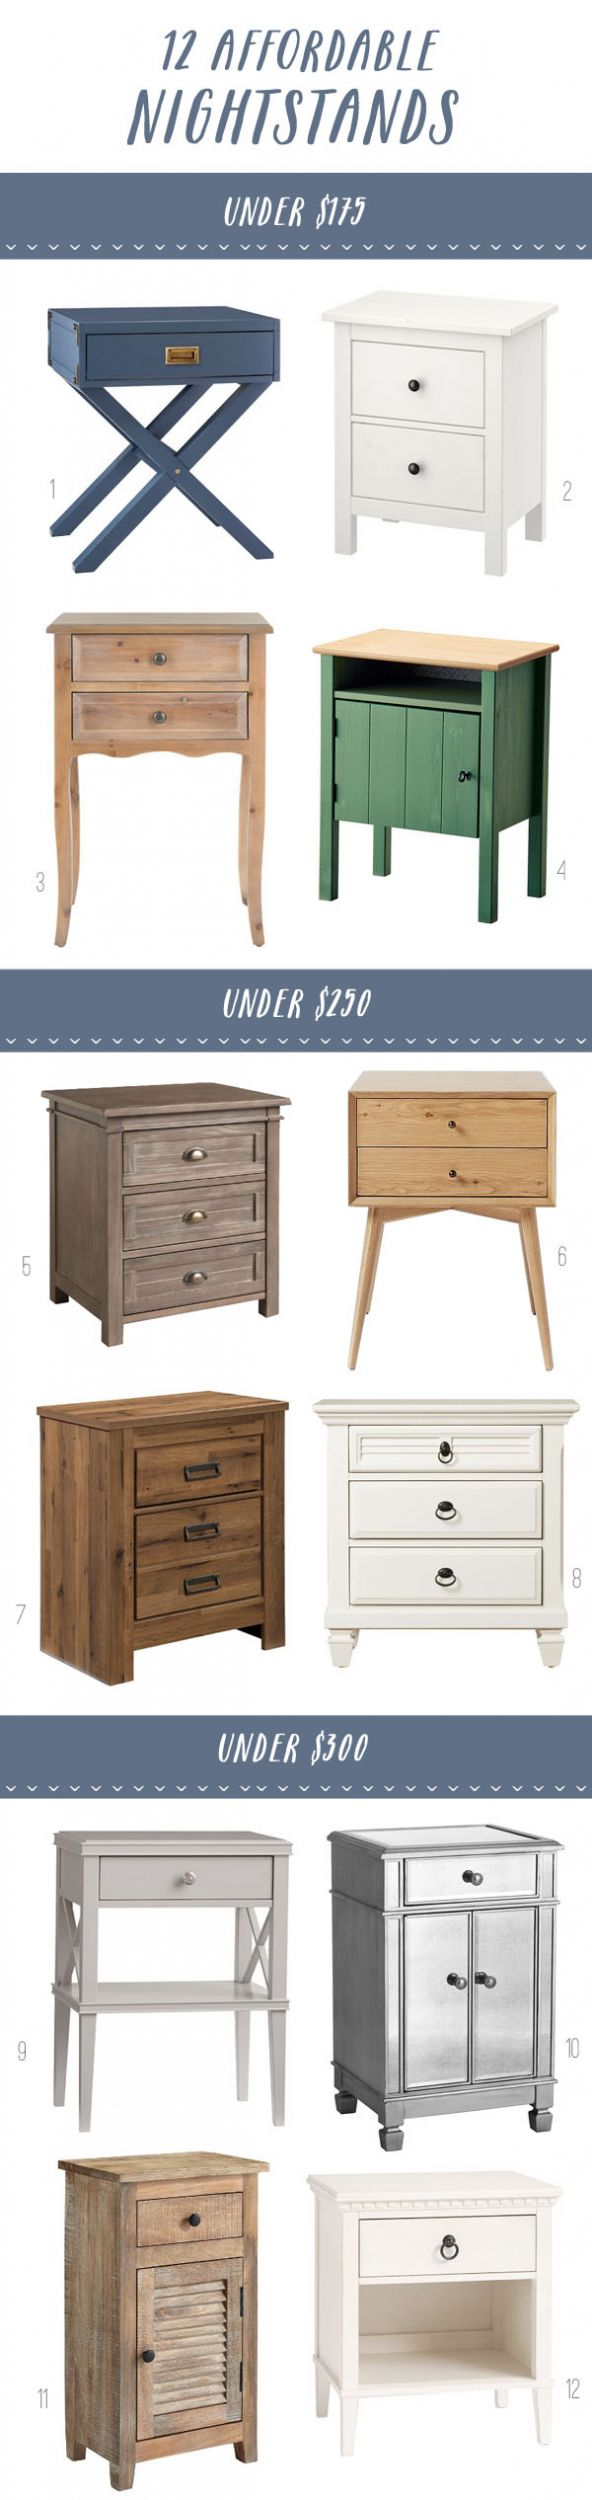 Gather 12 Affordable Nightstands The Inspired Room